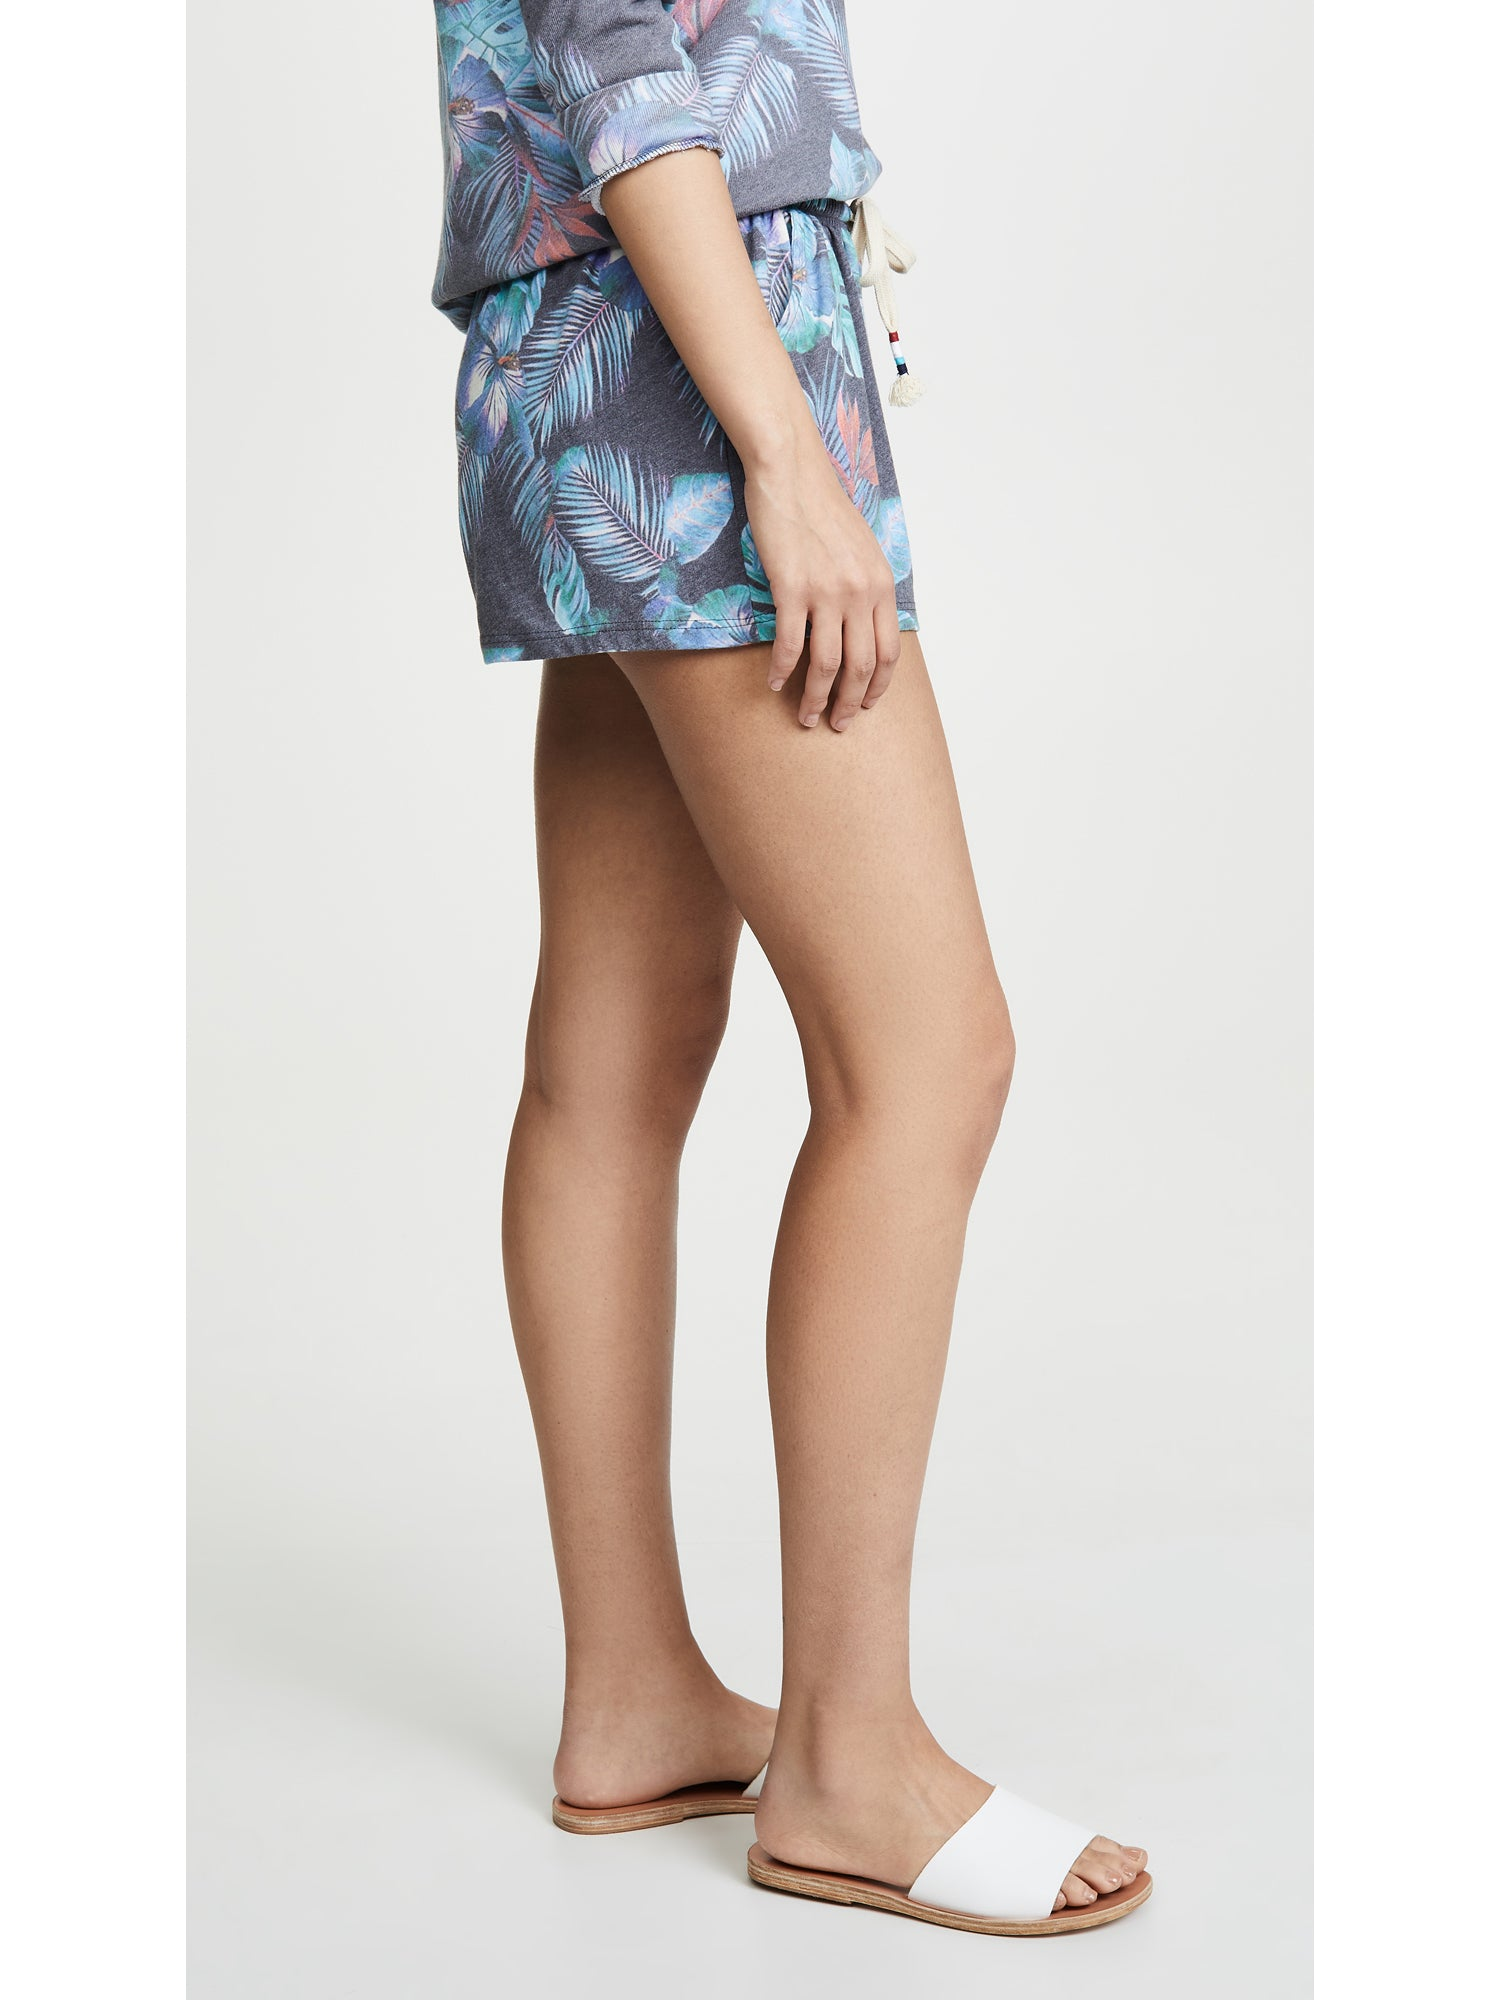 Sol Angeles Night Blooms Jersey Shorts - Blue Floral Print | TILDEN